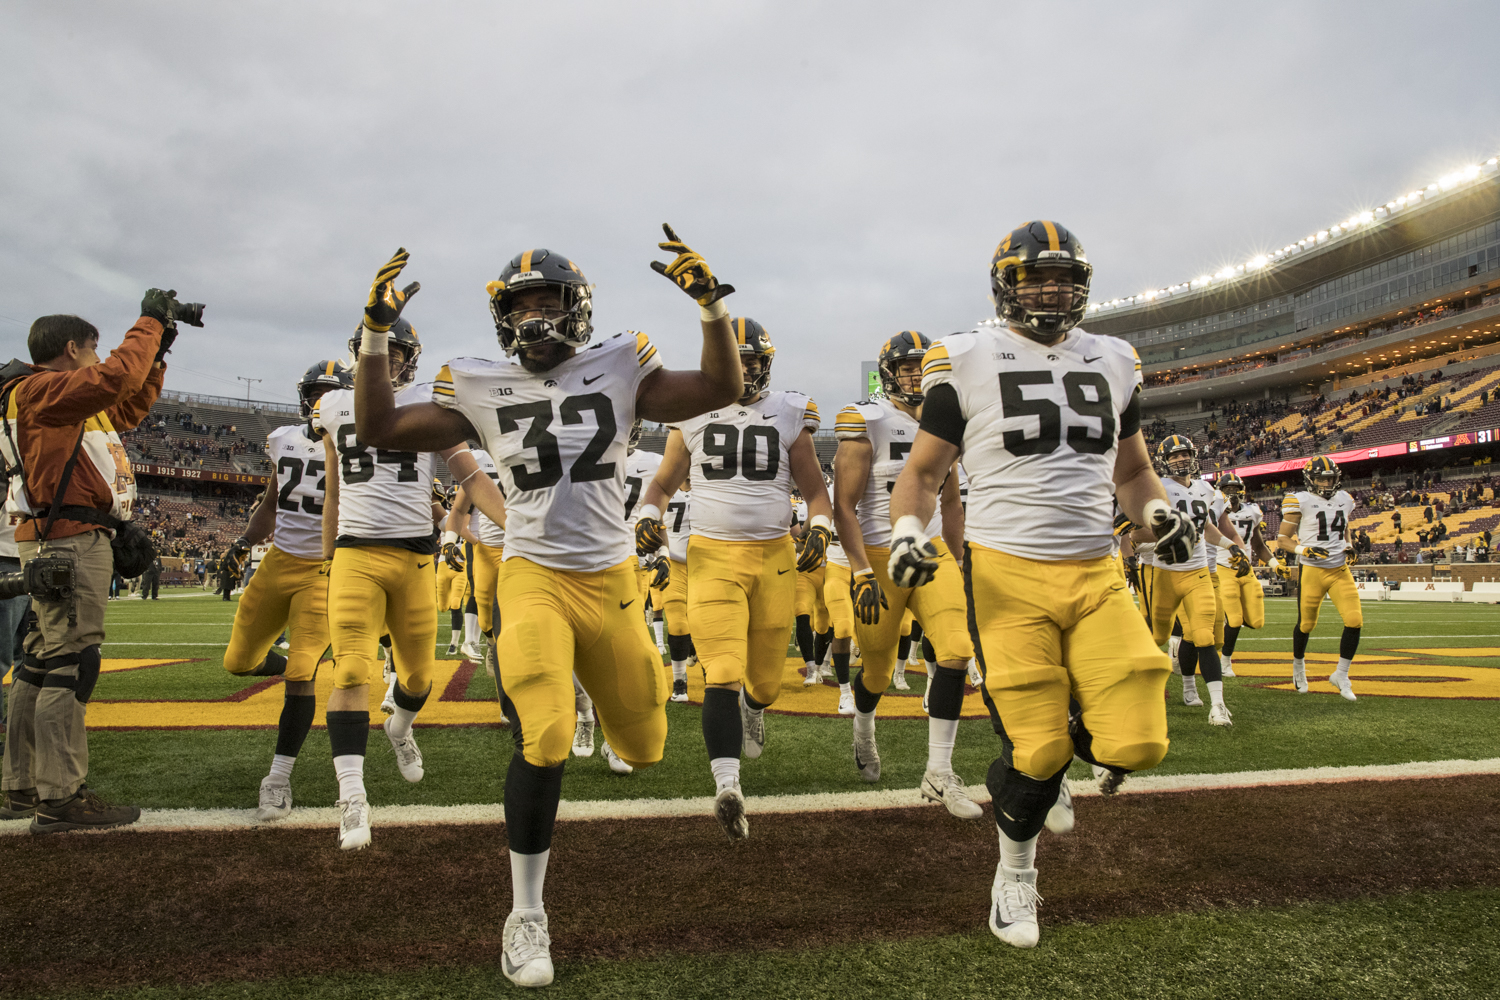 Iowa players celebrate their victory after their game against Minnesota at TCF Bank Stadium on Saturday, October 6, 2018. The Hawkeyes defeated the Golden Gophers 48-31.